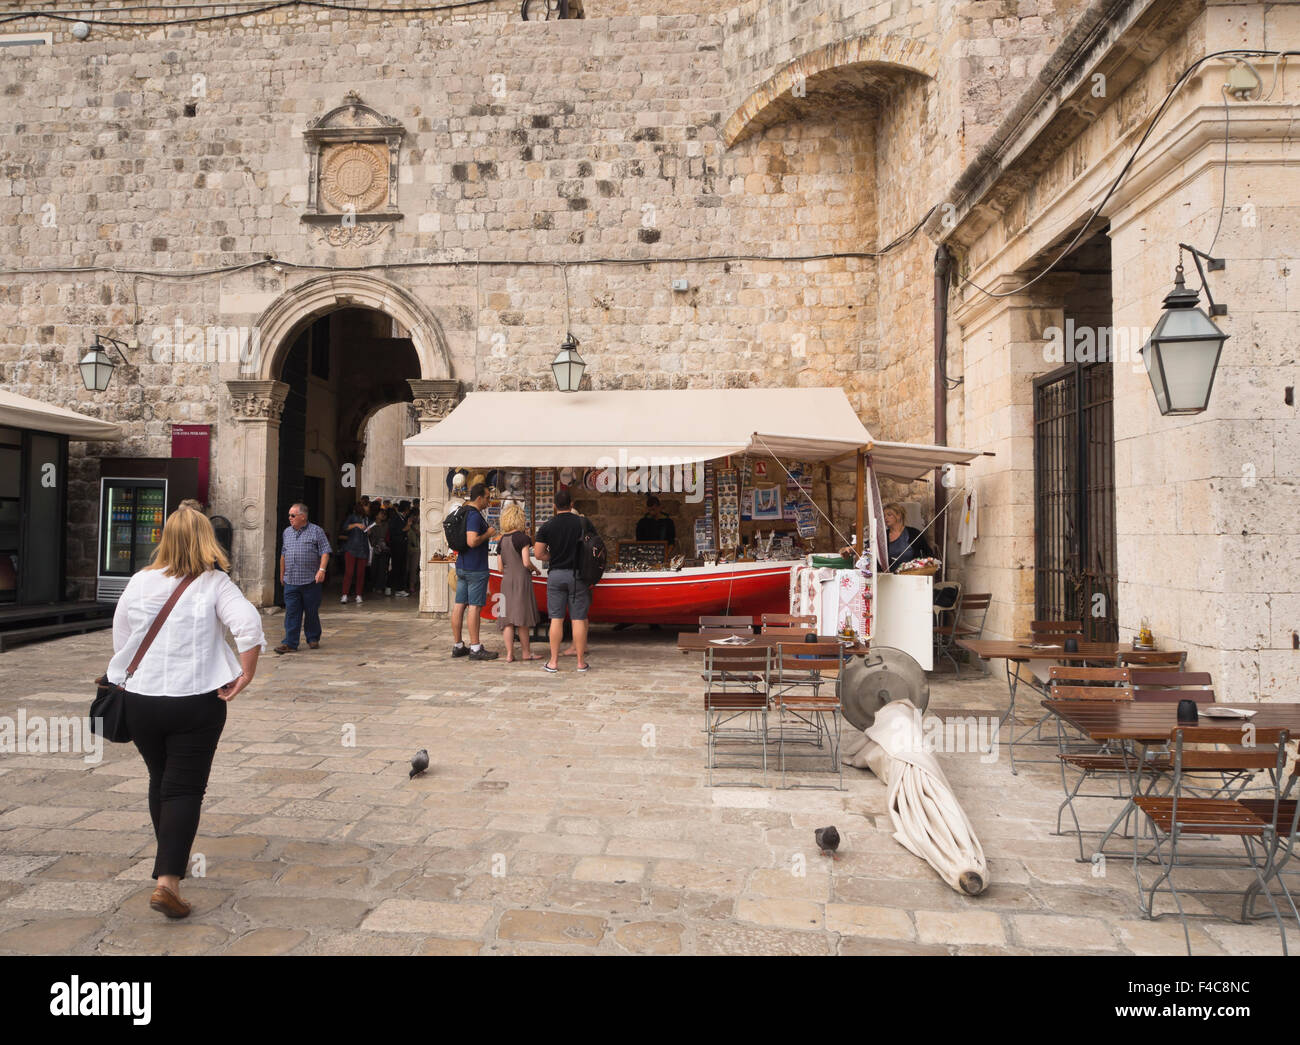 Souvenirs for sale in a boat shaped stall in the old harbour of Dubrovnik Croatia under the fortification walls - Stock Image